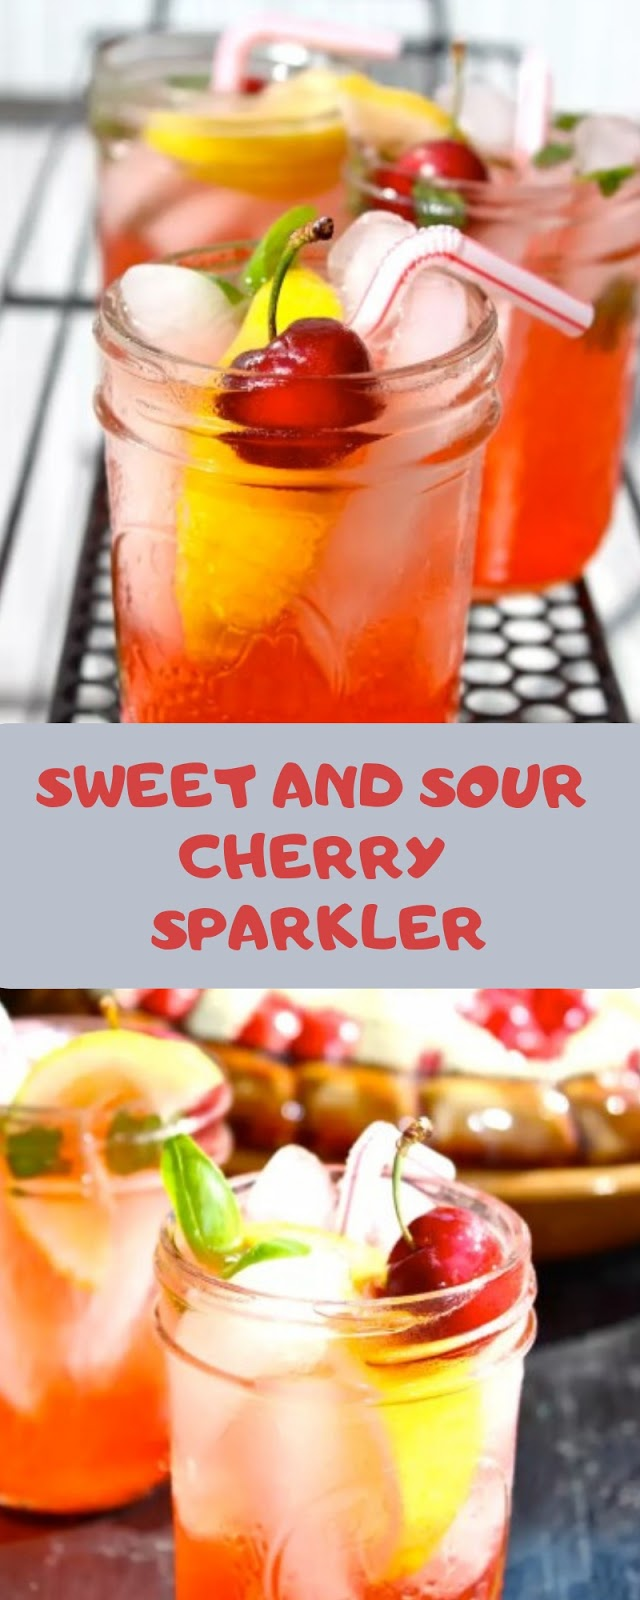 SWEET AND SOUR CHERRY SPARKLER